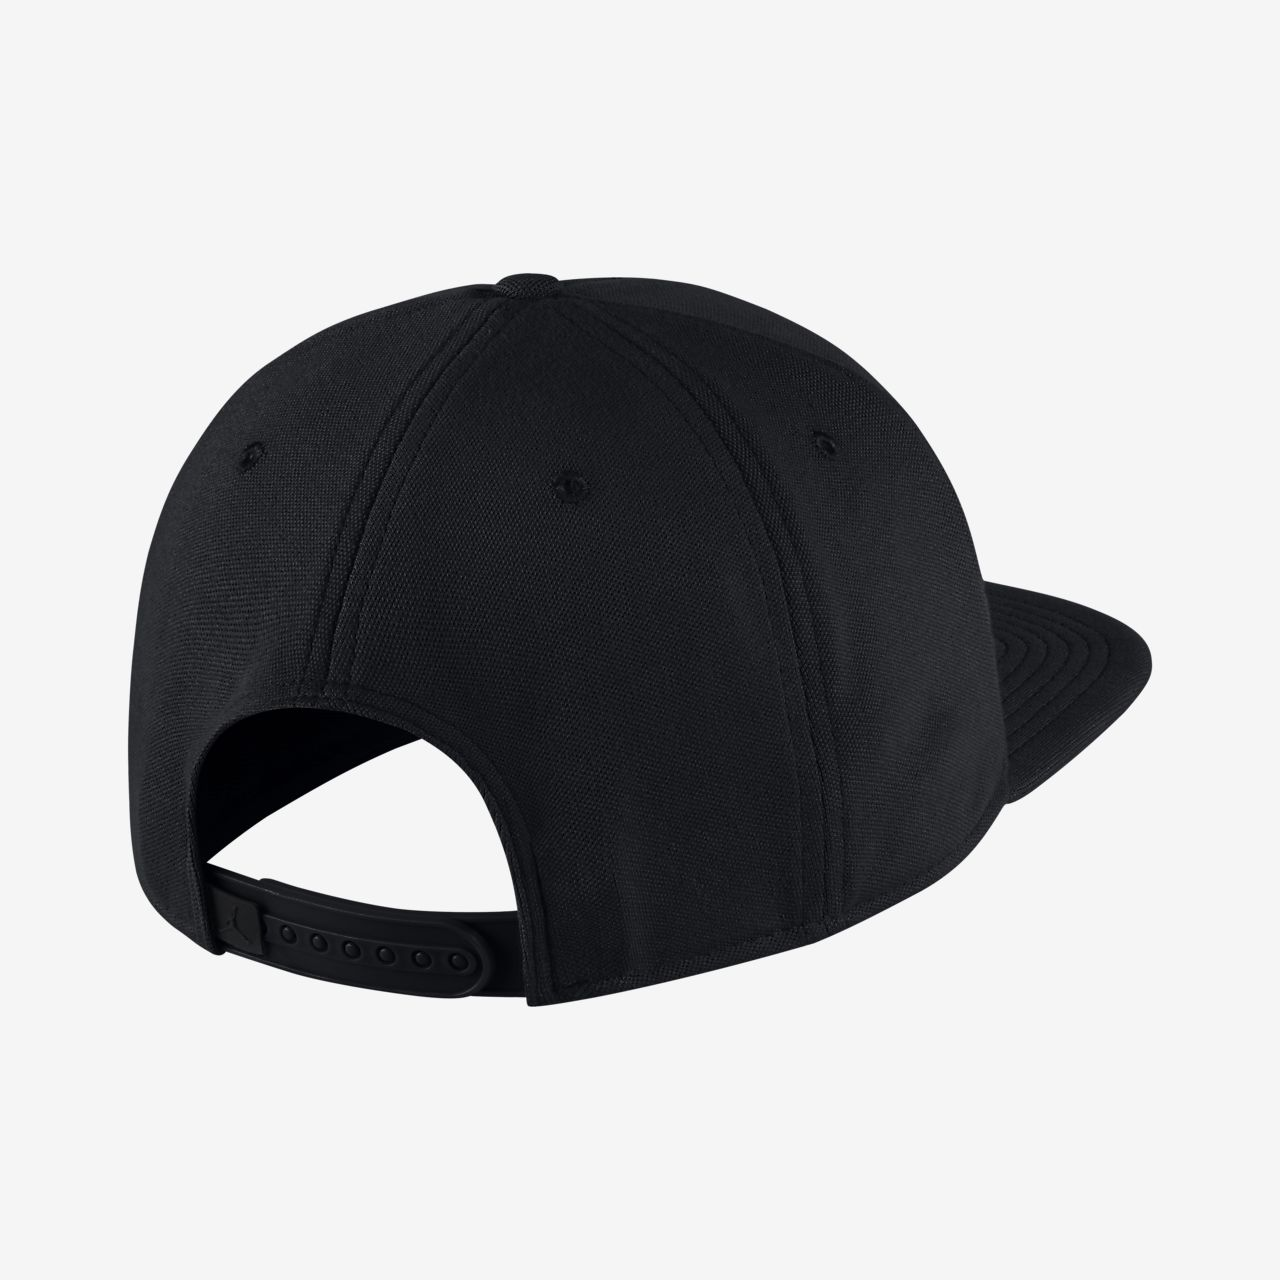 e49e012b72a1e Low Resolution Jordan Jumpman Snapback Adjustable Hat Jordan Jumpman  Snapback Adjustable Hat